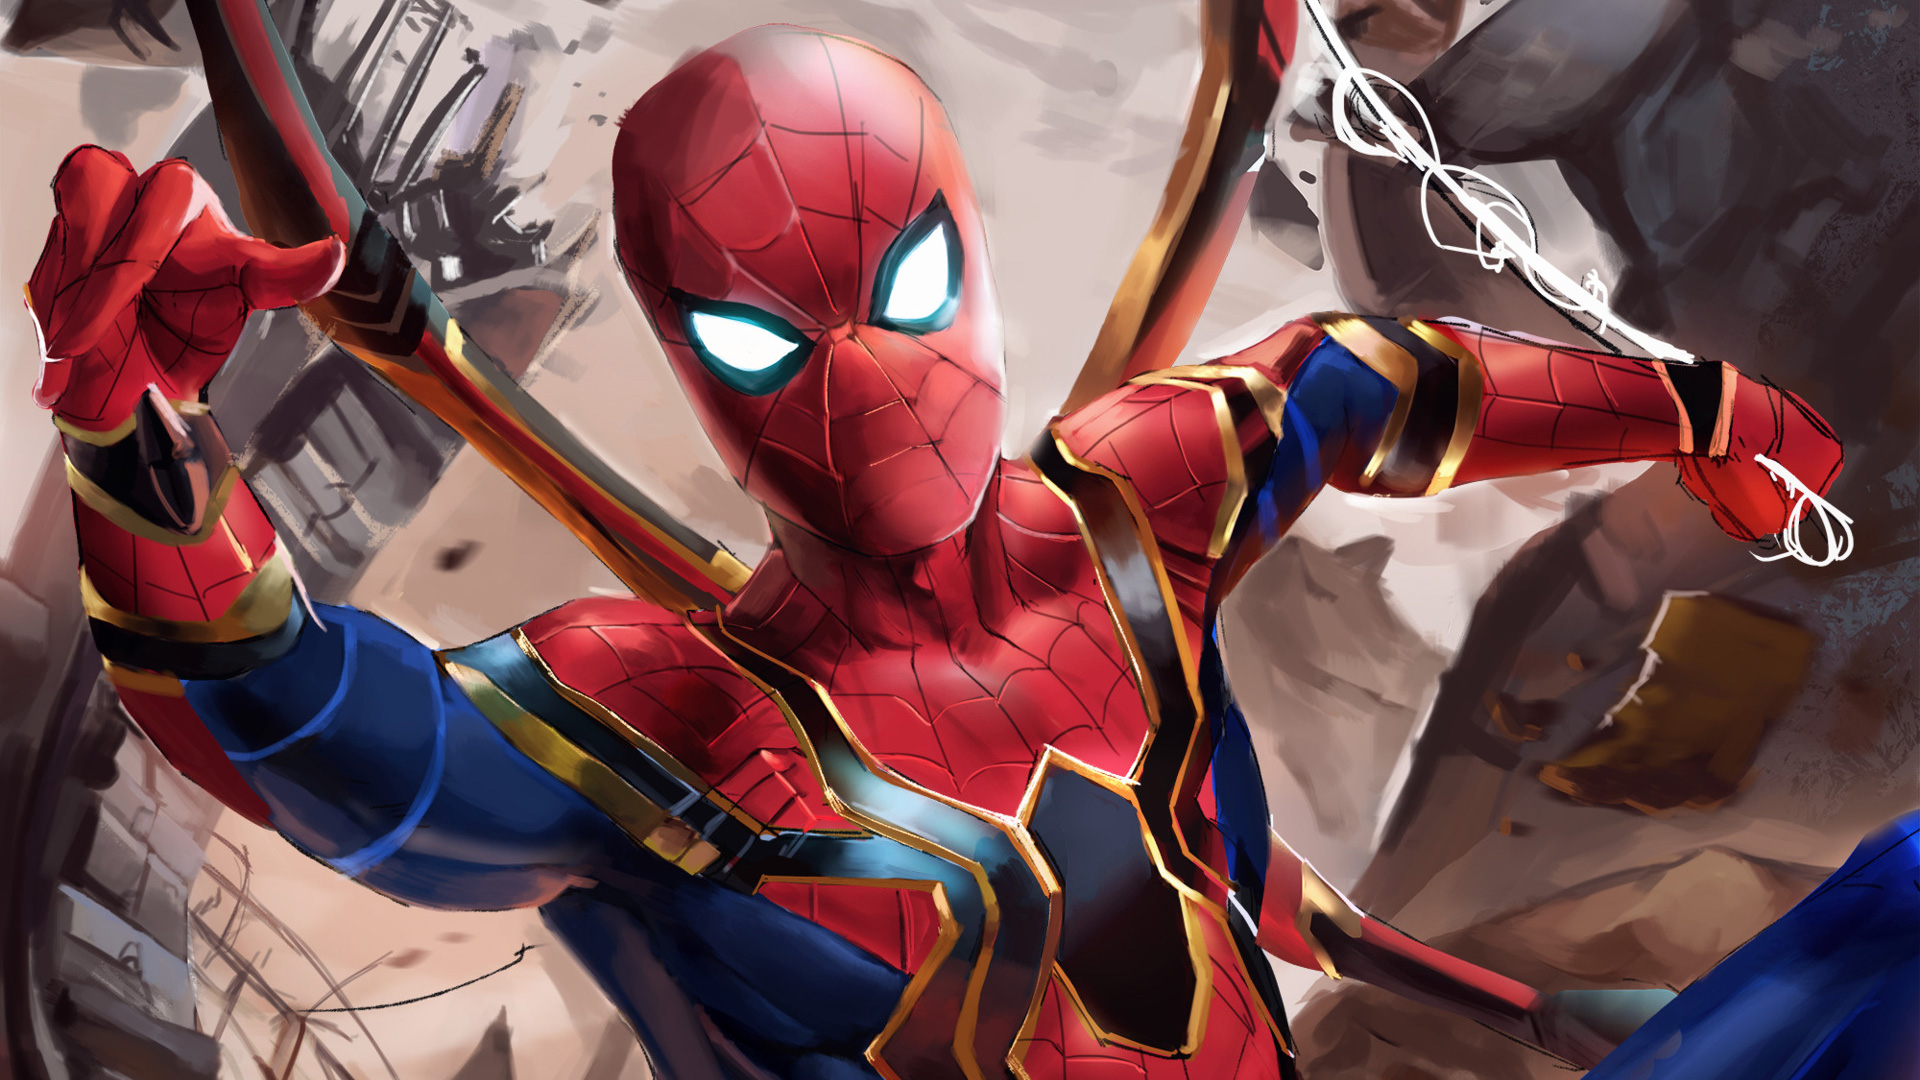 Iron spider suit in avengers infinity war hd movies 4k - Iron man spiderman wallpaper ...